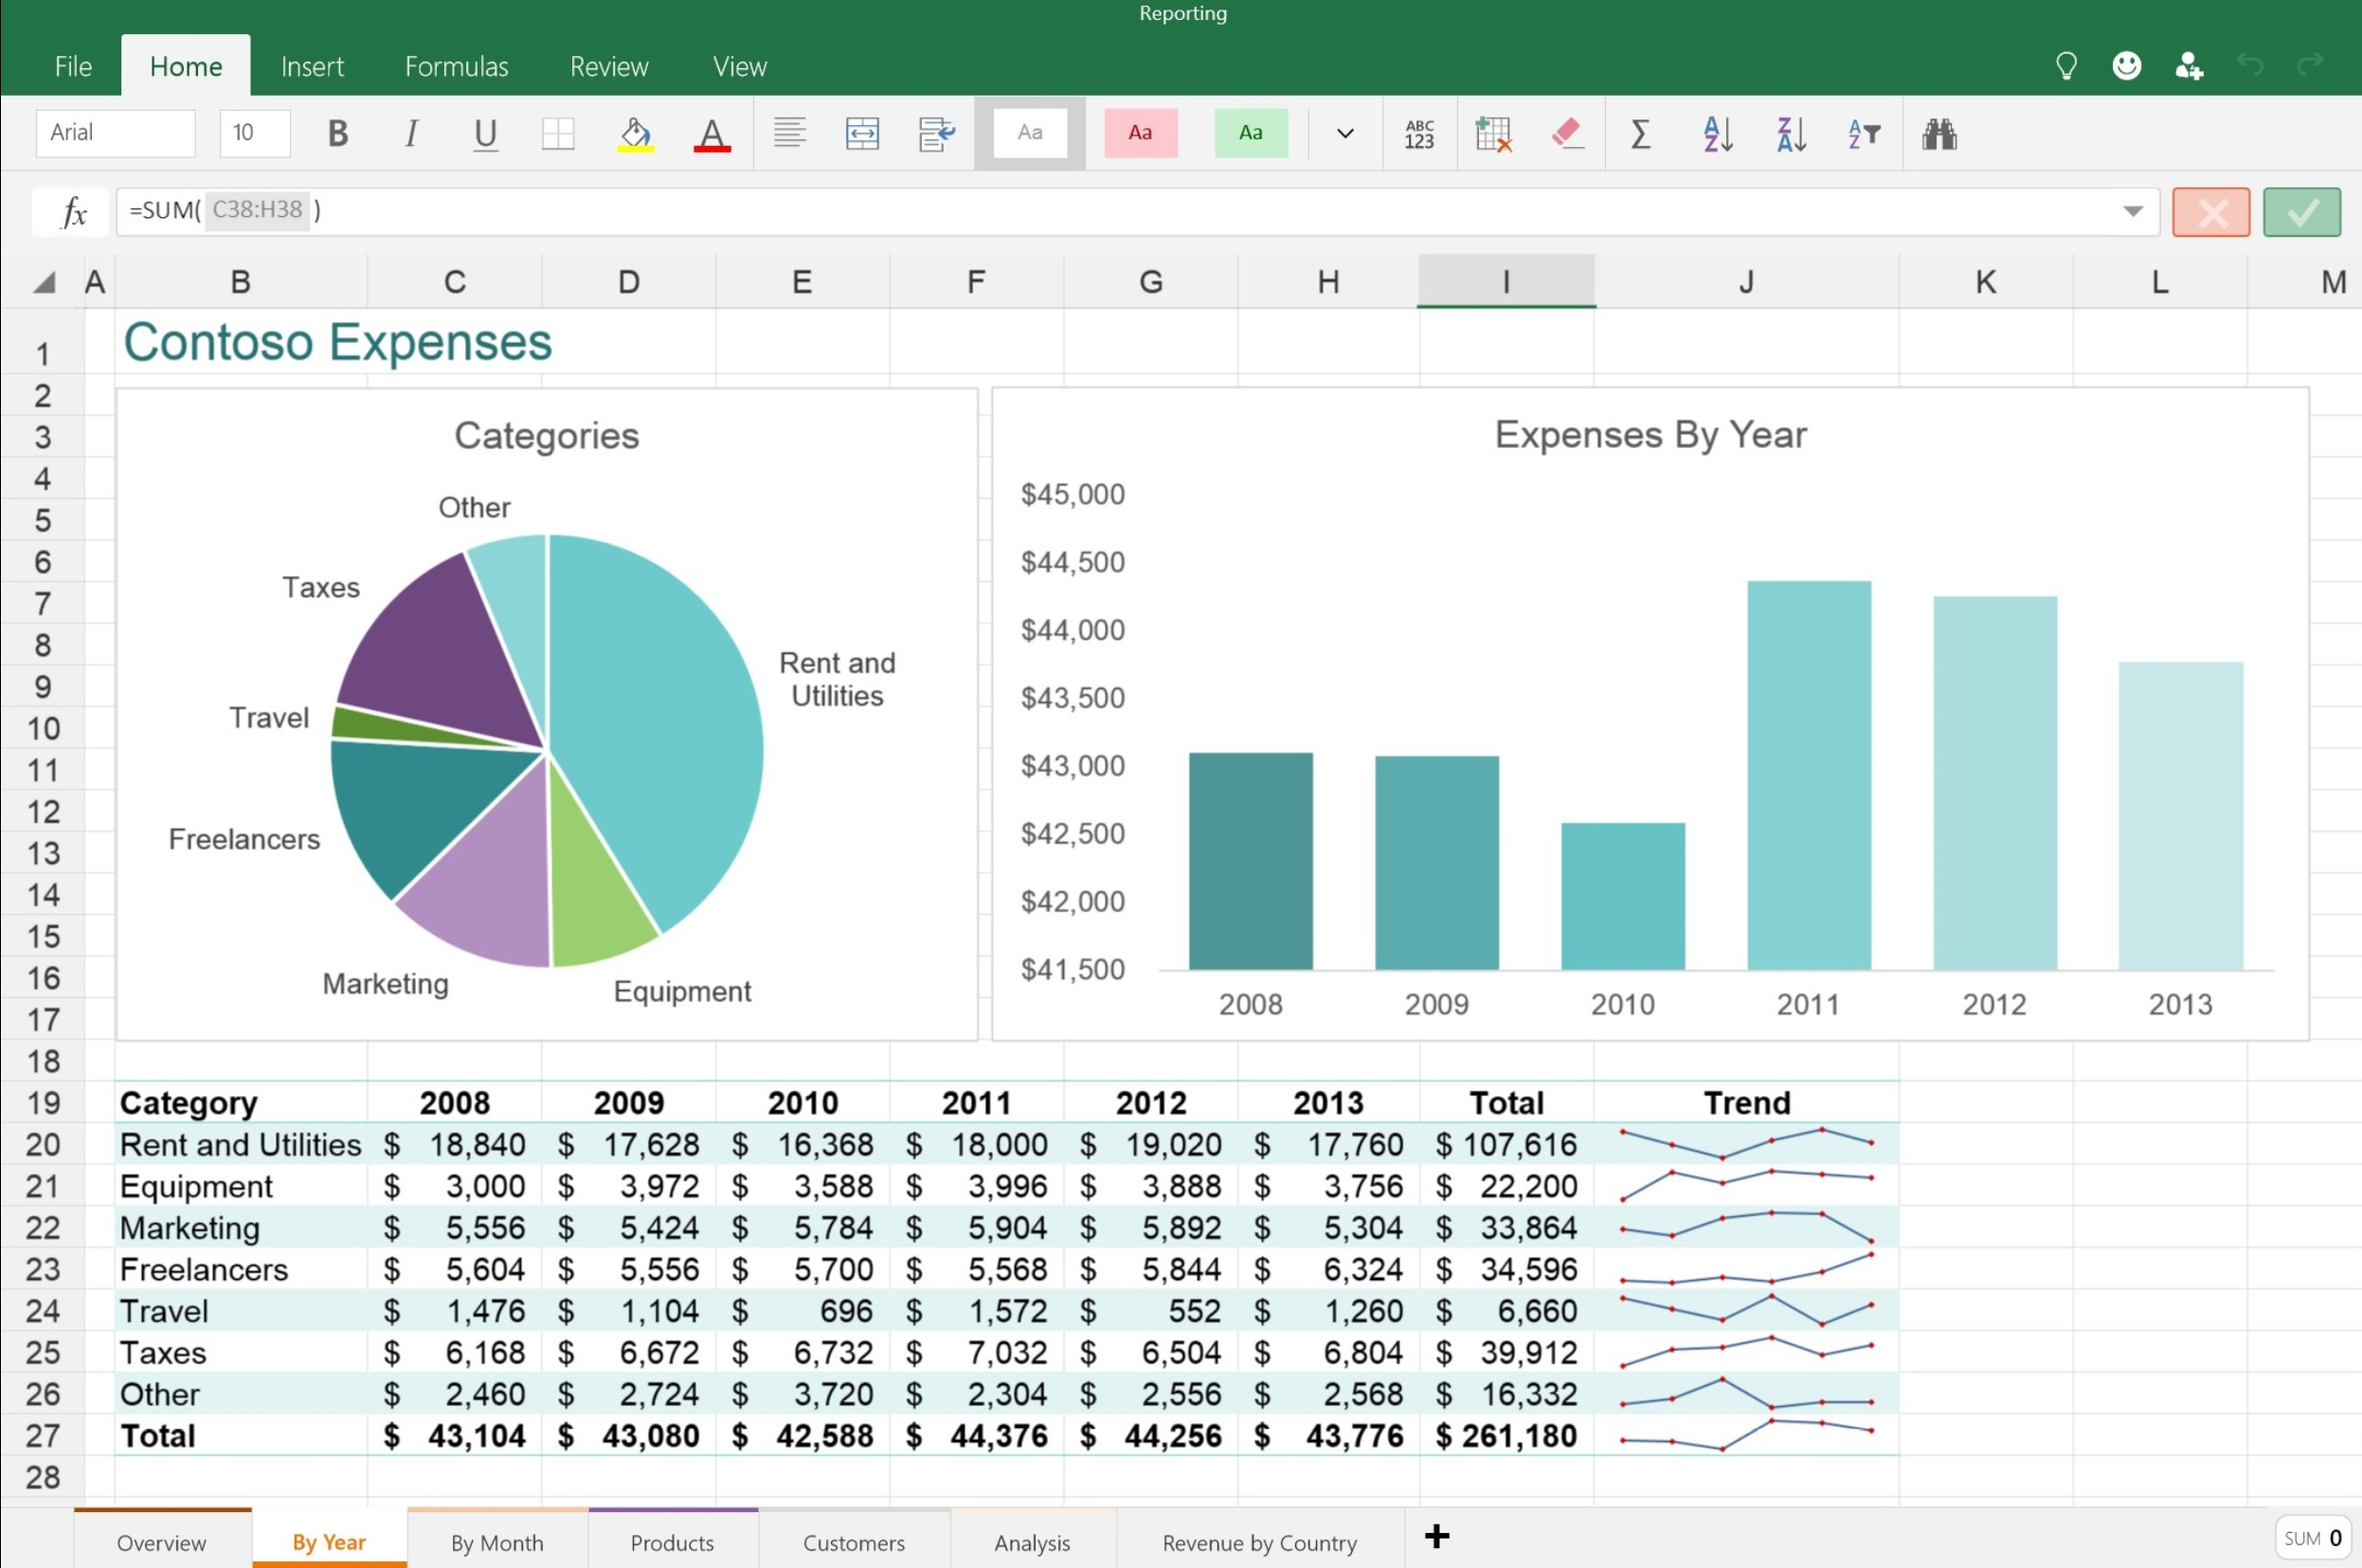 Ediblewildsus  Inspiring Features Available In The New Word Excel And Powerpoint Apps For  With Handsome Excel Touch App  With Cool Excel Left Find Also Excel Offset Vba In Addition Send Emails From Excel And Excel Th Wheel For Sale As Well As Income Statement In Excel Additionally Contour Plot In Excel From Mspowerusercom With Ediblewildsus  Handsome Features Available In The New Word Excel And Powerpoint Apps For  With Cool Excel Touch App  And Inspiring Excel Left Find Also Excel Offset Vba In Addition Send Emails From Excel From Mspowerusercom